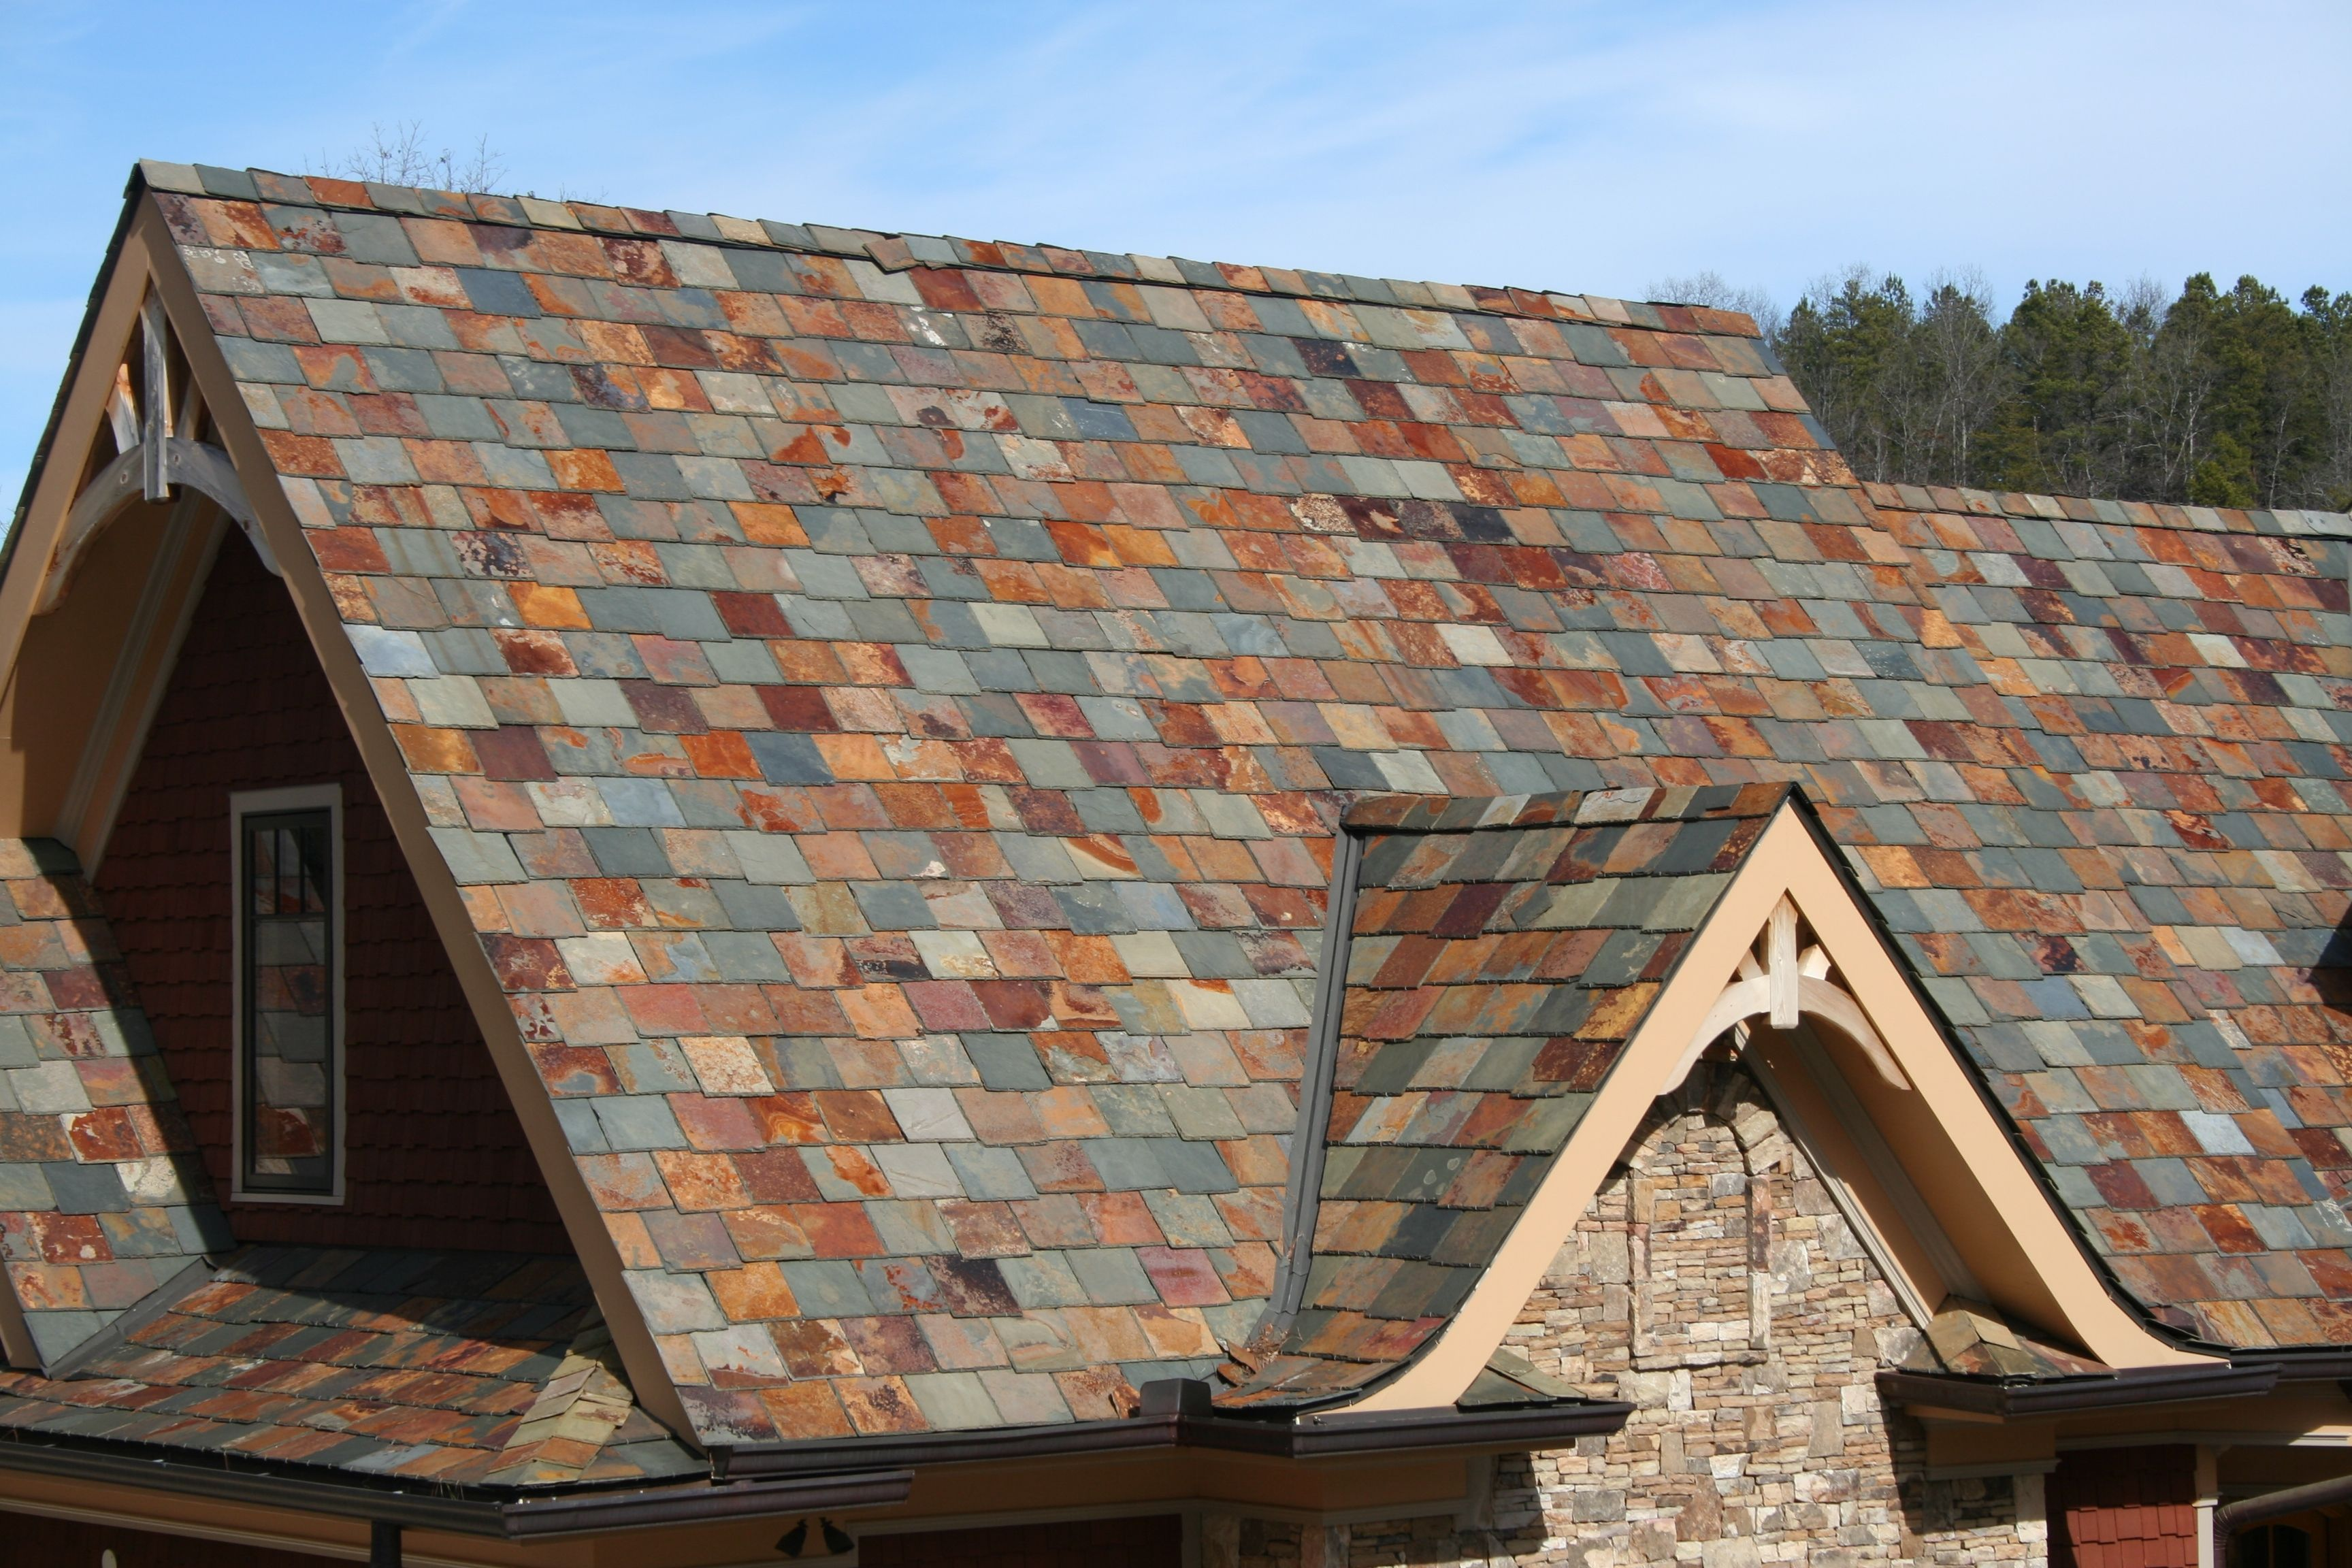 Metal Roofing That Looks Like Slate Roof Shingles Decoration Pertaining Dimensions Roofs Look Ideas Tin Materials Corrug Roofing Metal Roof Slate Roof Shingles